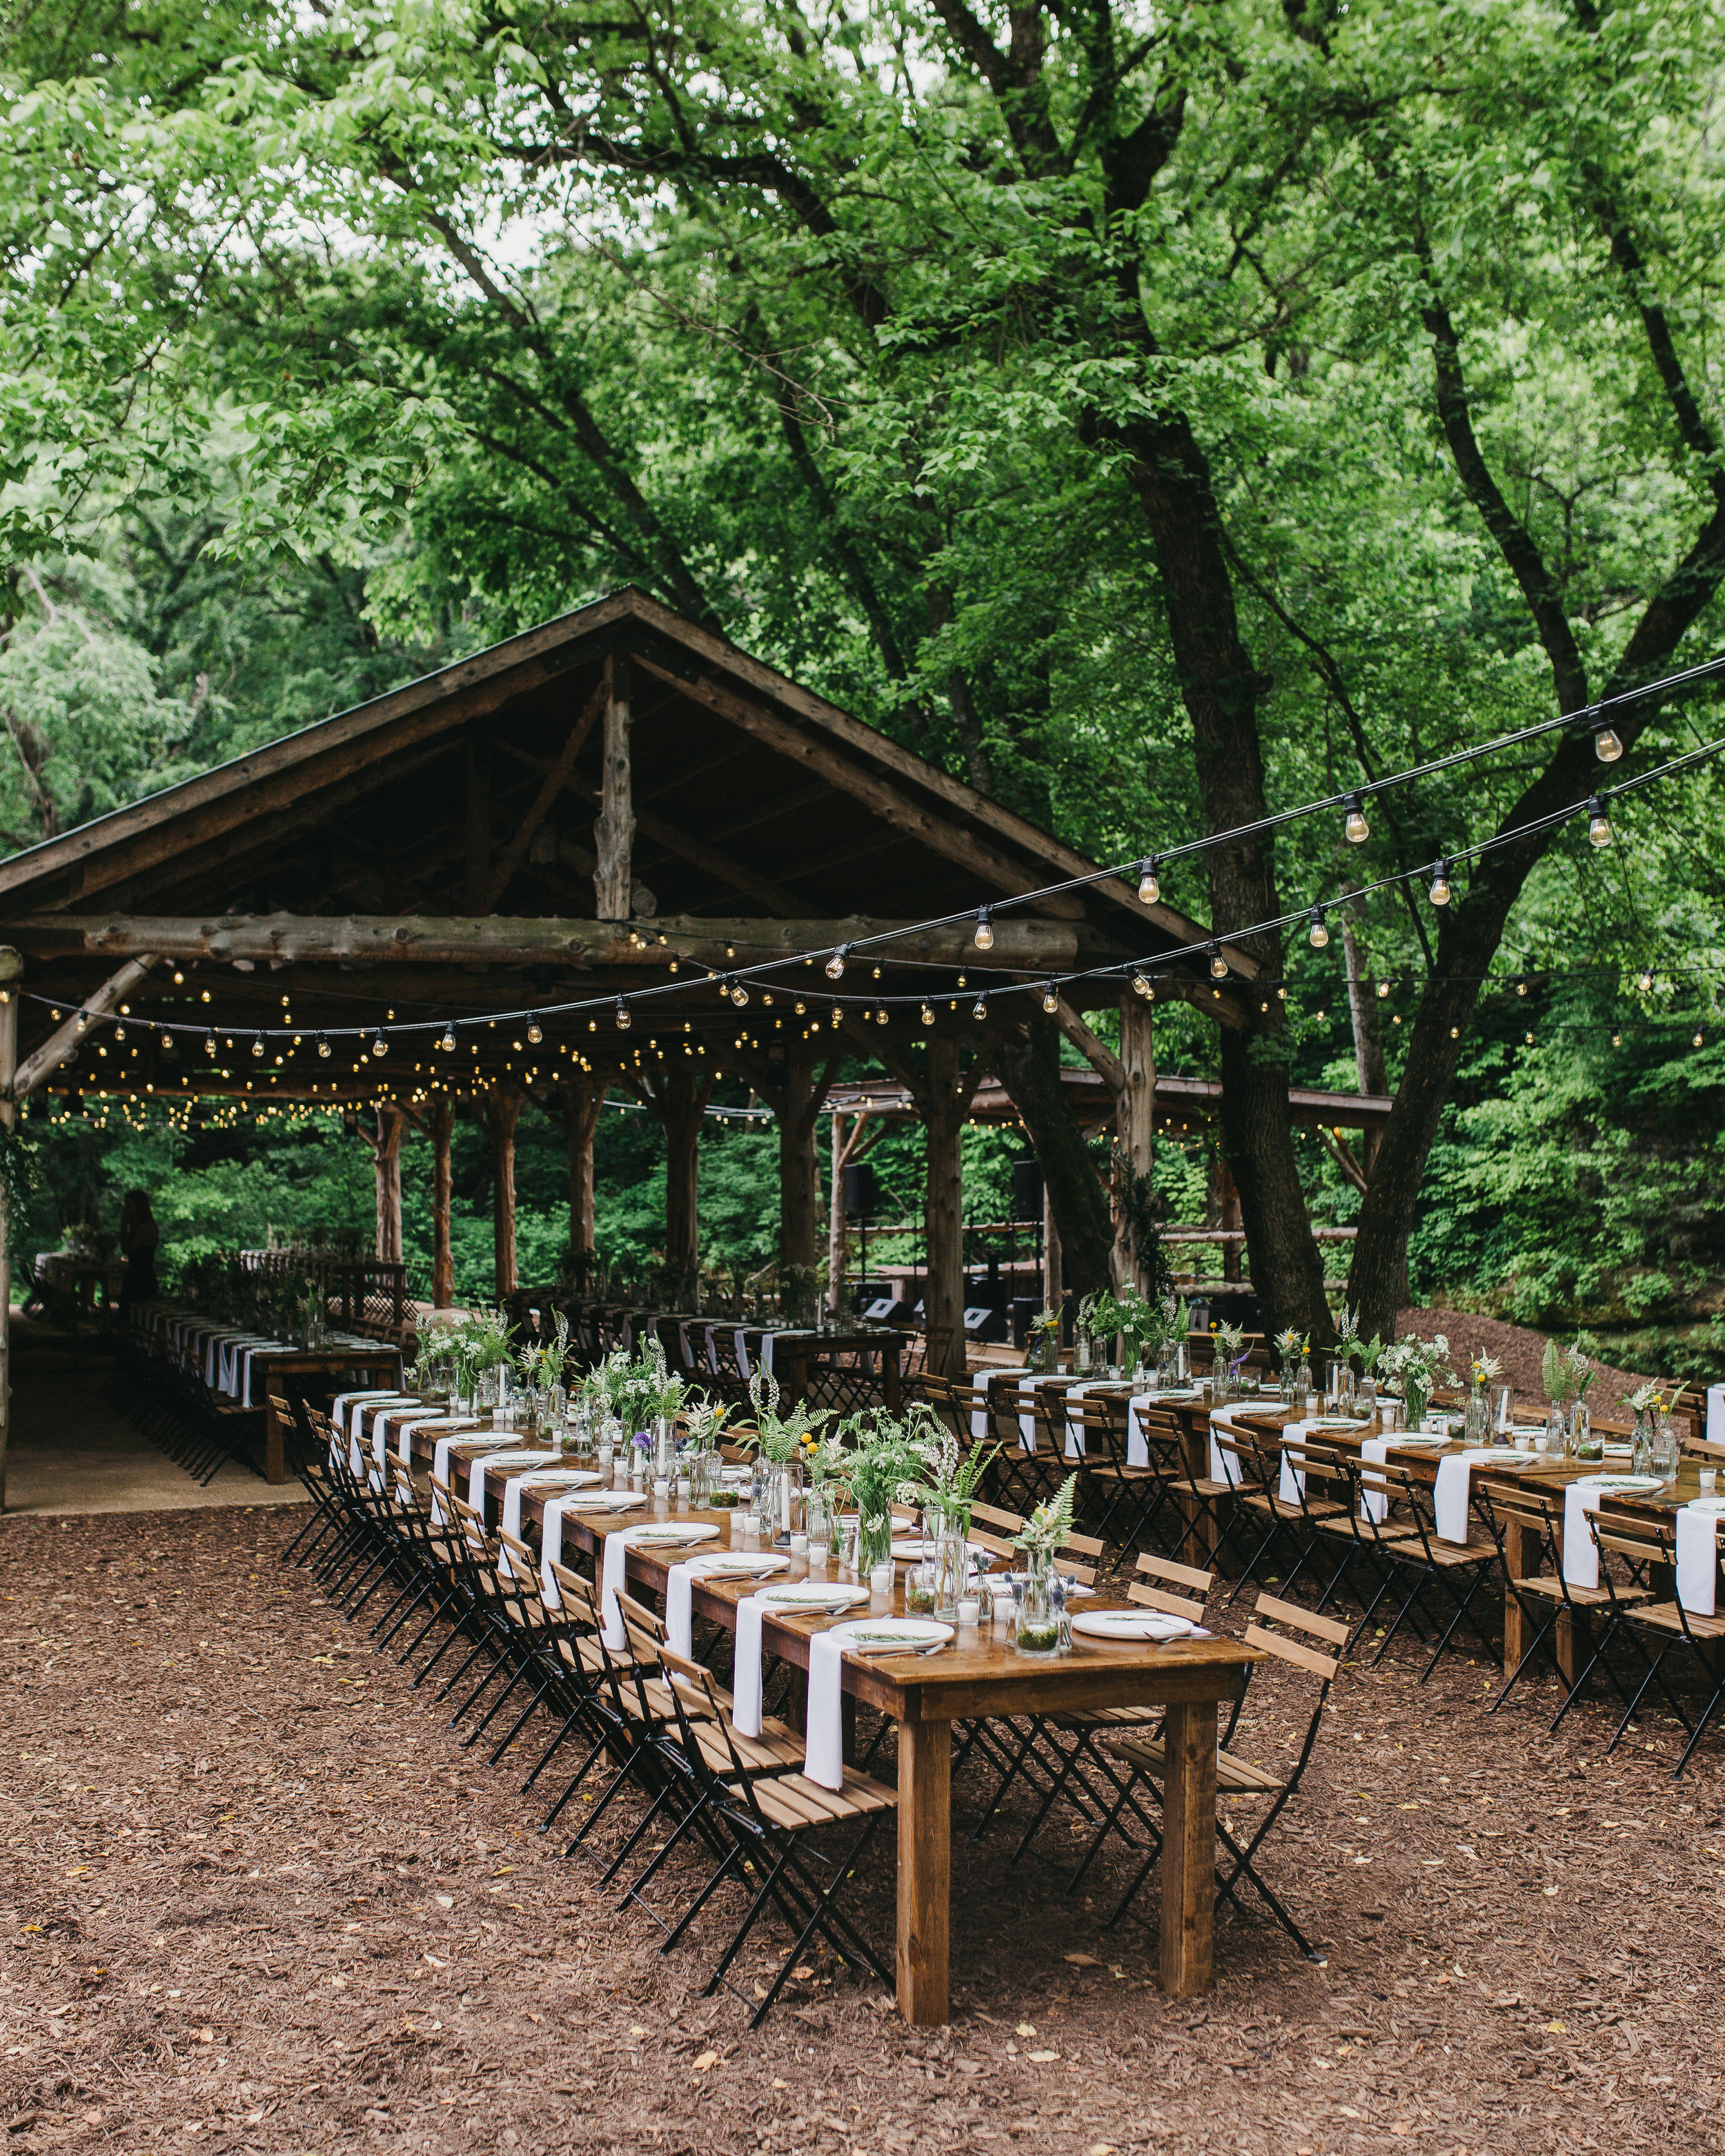 farmhouse tables with greenery and budvases at outdoor destination wedding